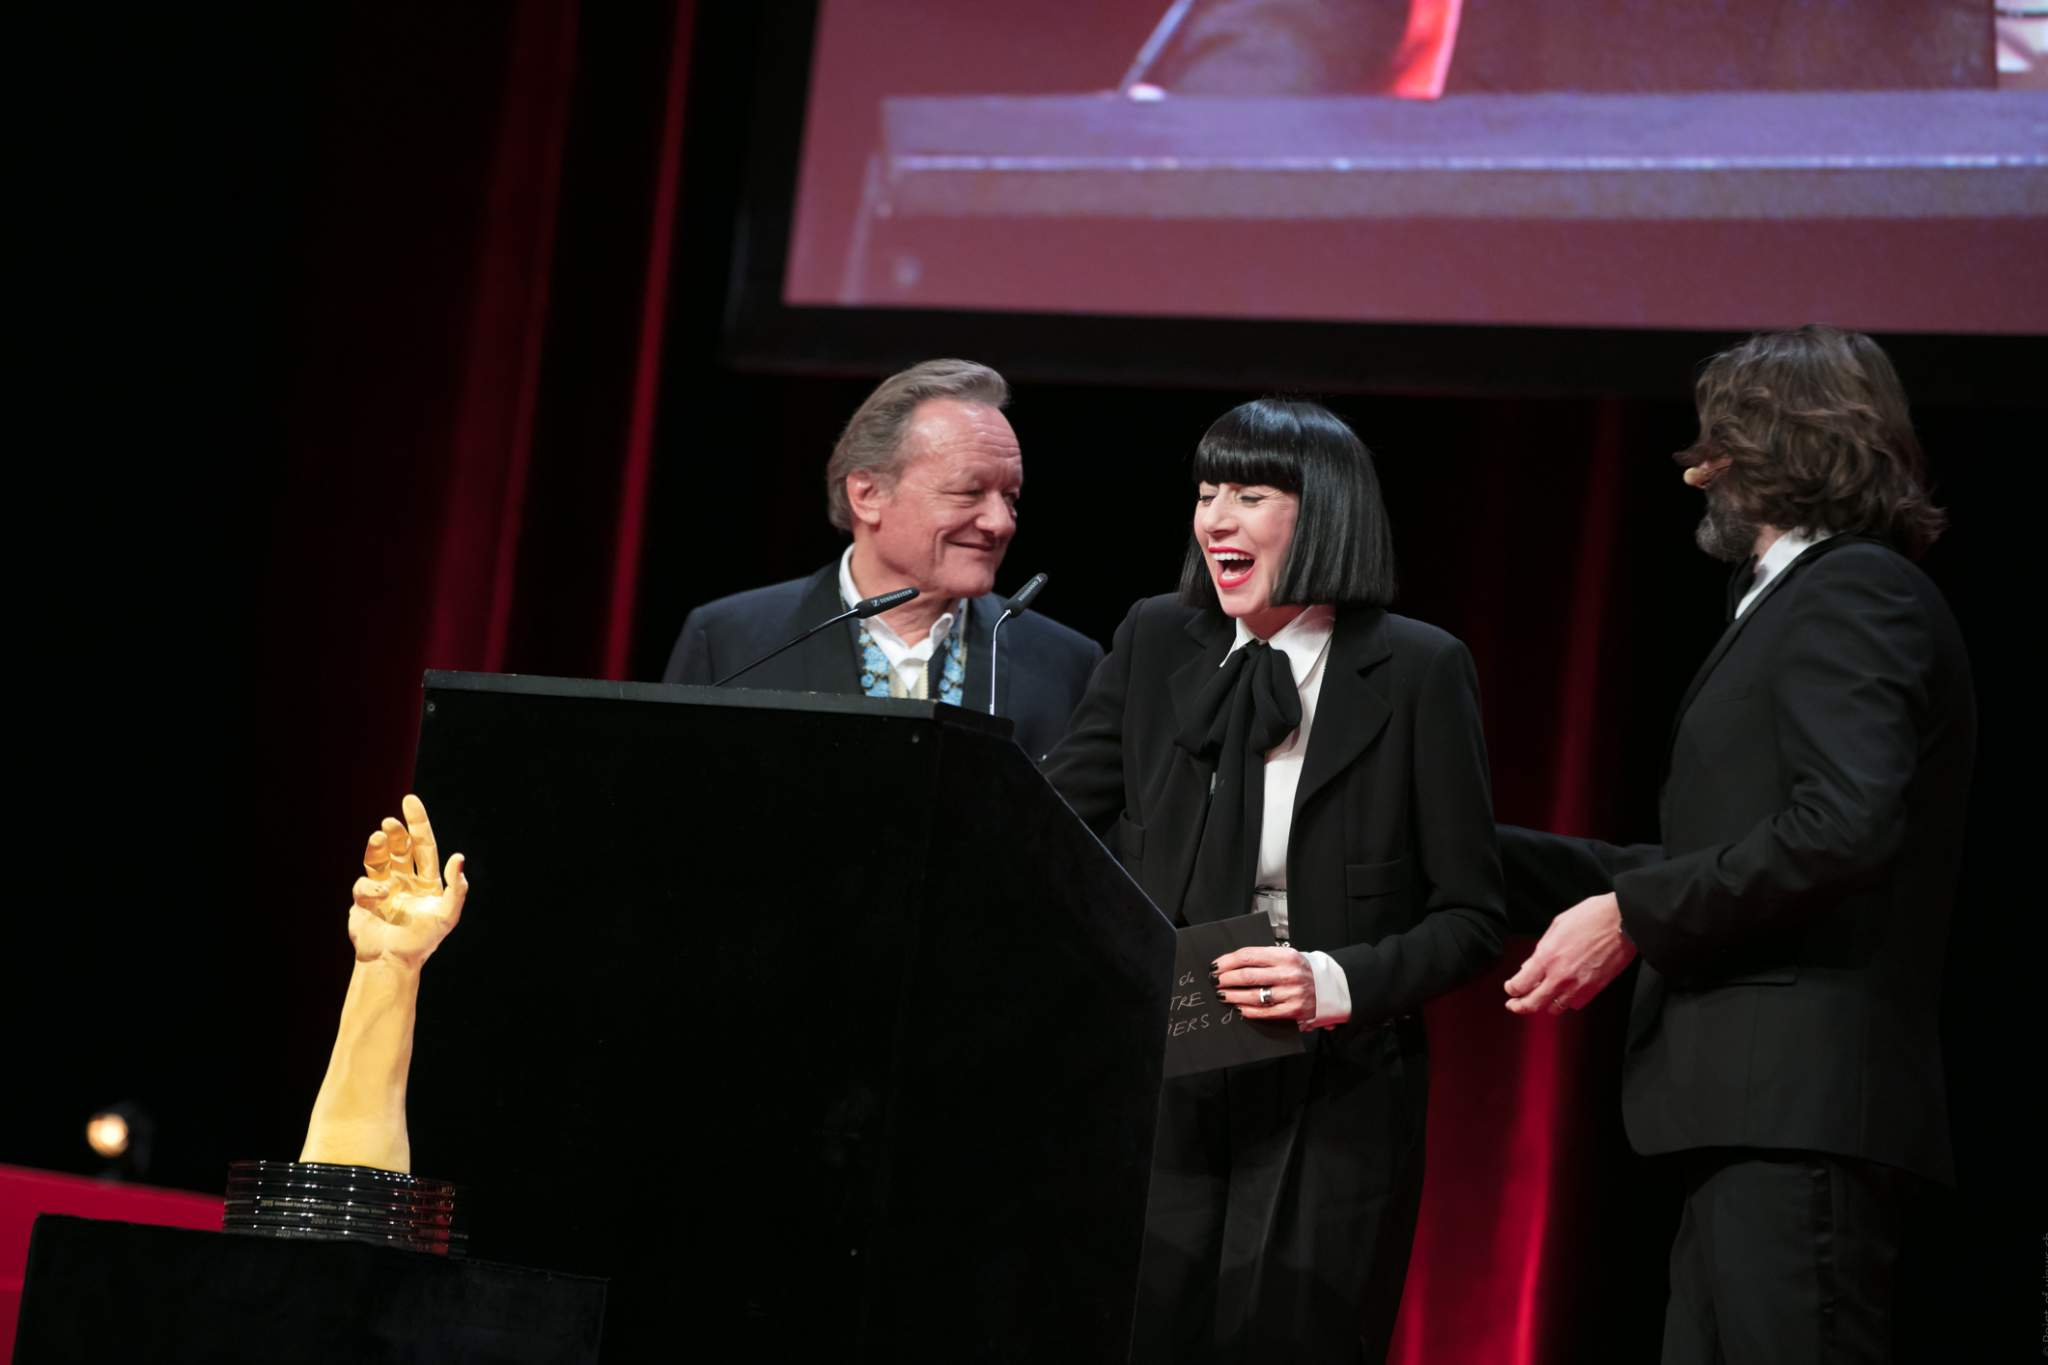 Pierre Maillard, Chantal Thomass (jury members) and Frédéric Beigbeder (MC of the prize-giving ceremony of the GPHG 16)